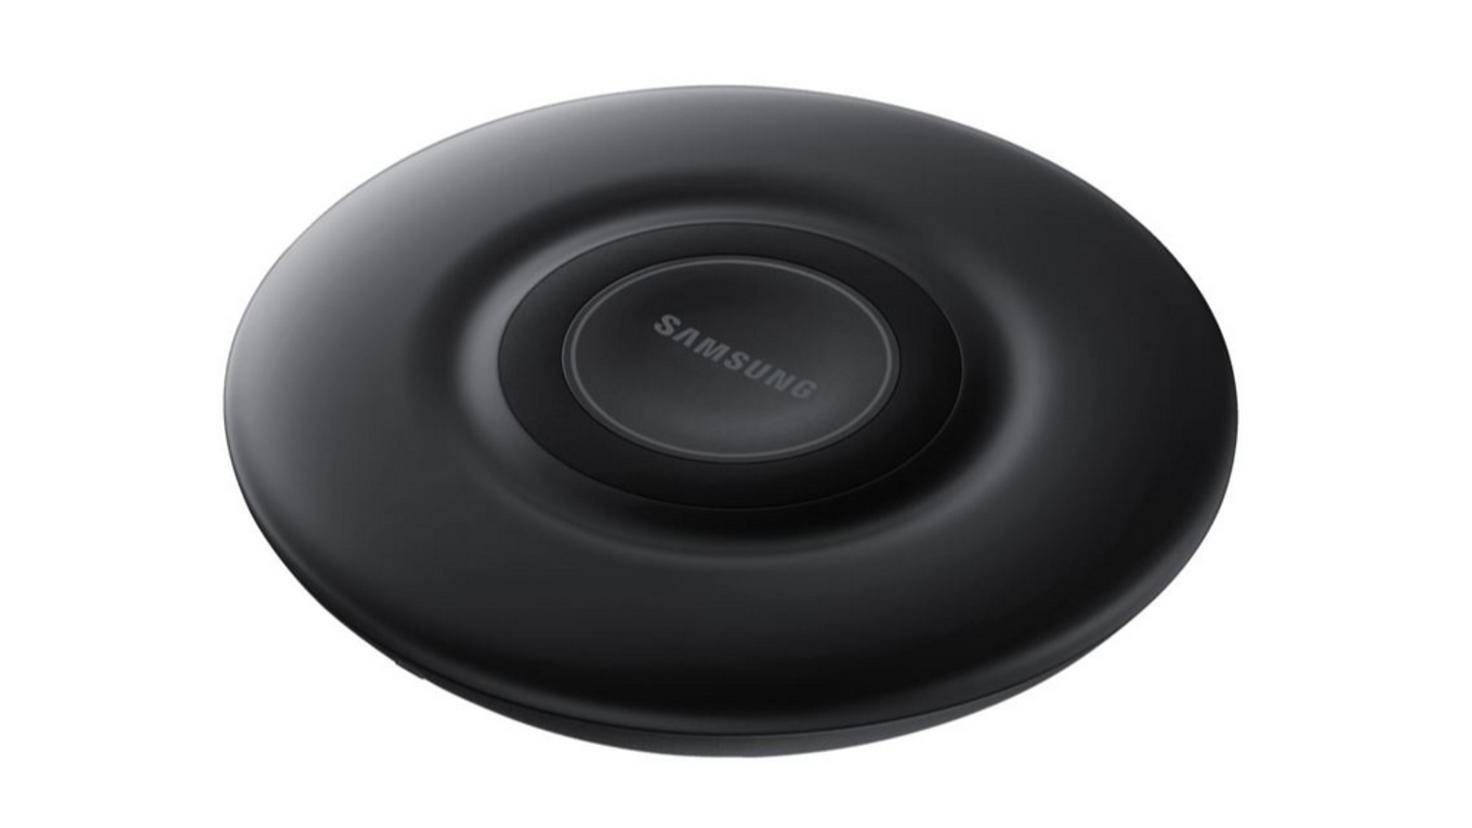 Samsung-Wireless-Charger-02